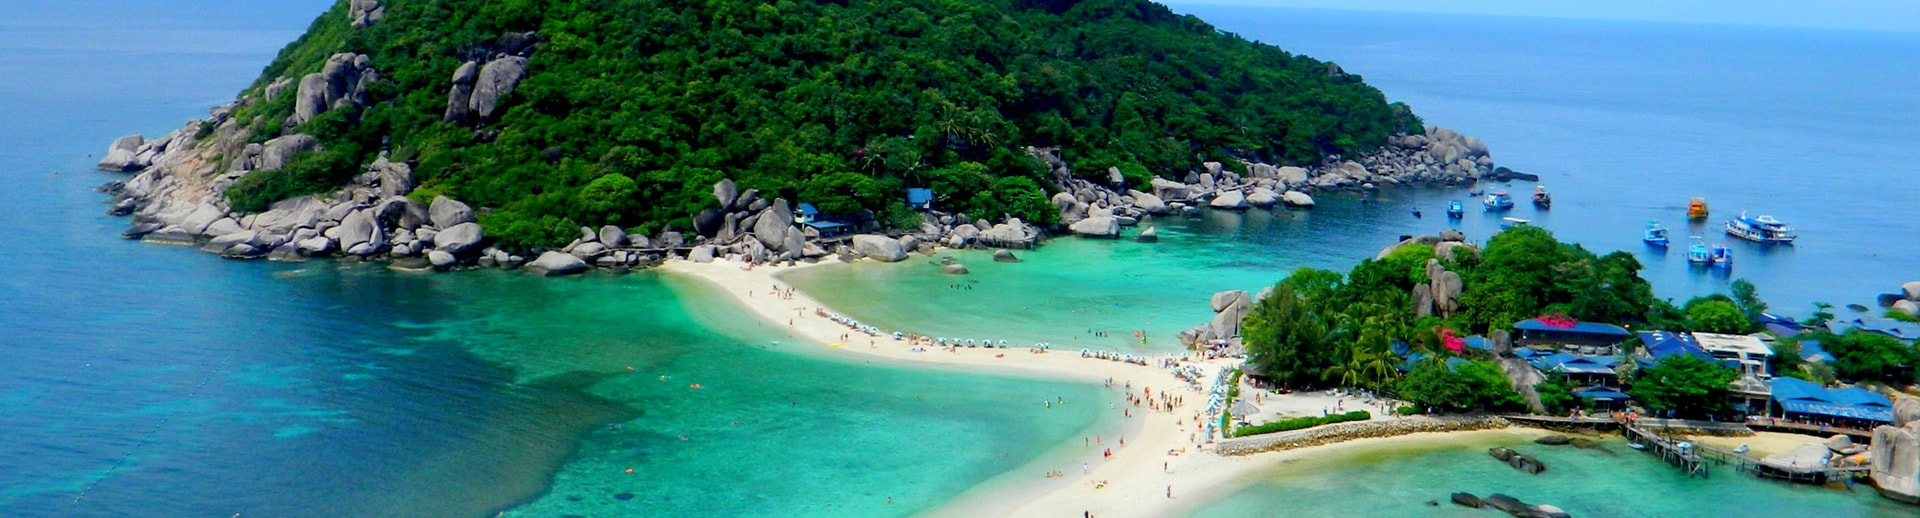 One day tour to Koh Tao by speed boat - Koh Samui Tours